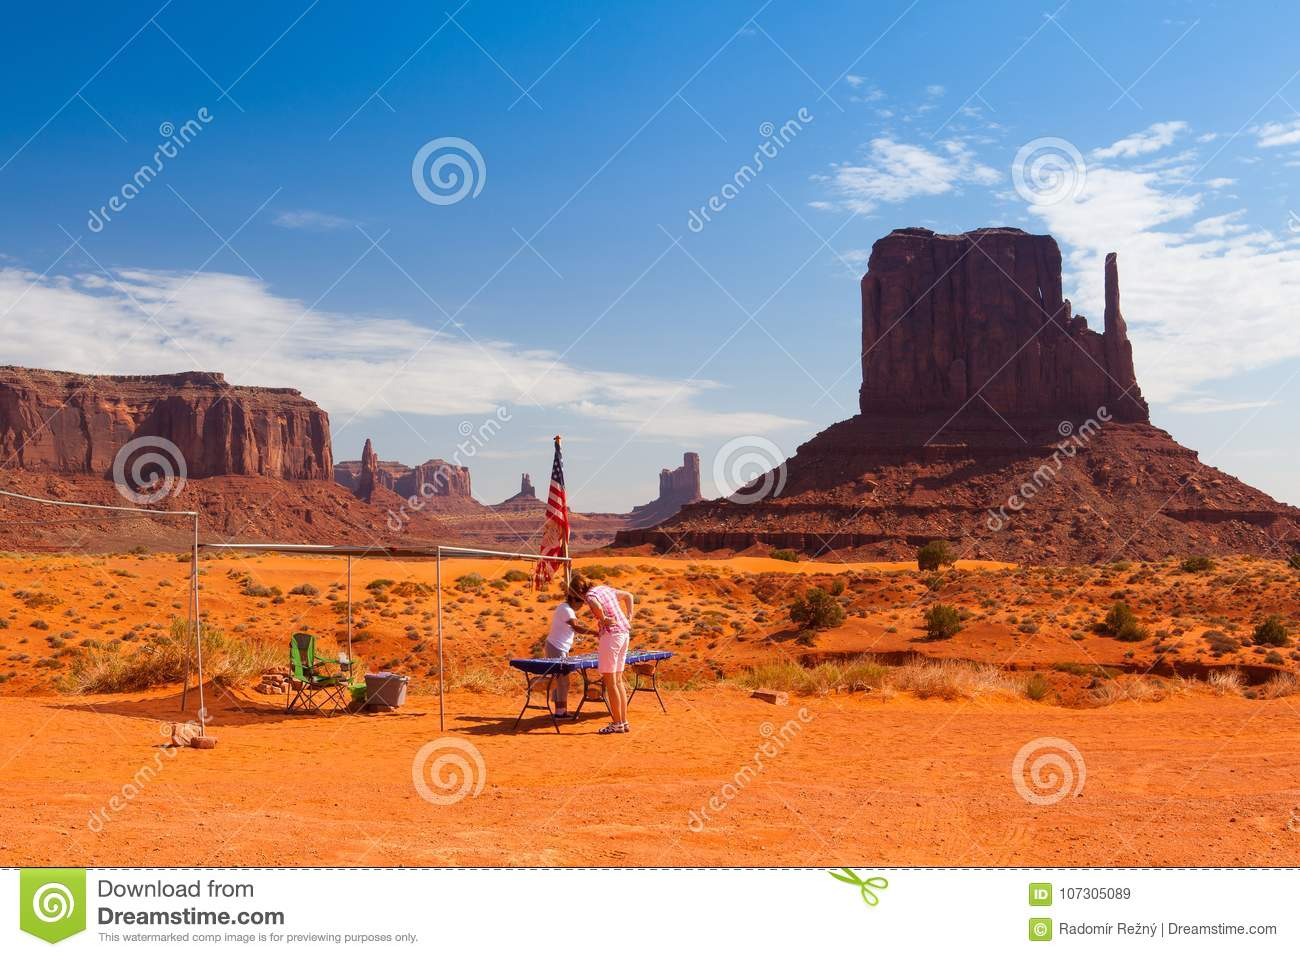 Monument Valley In The Navajo Tribal Park Usa Editorial Stock Image Image Of People Mountain 107305089